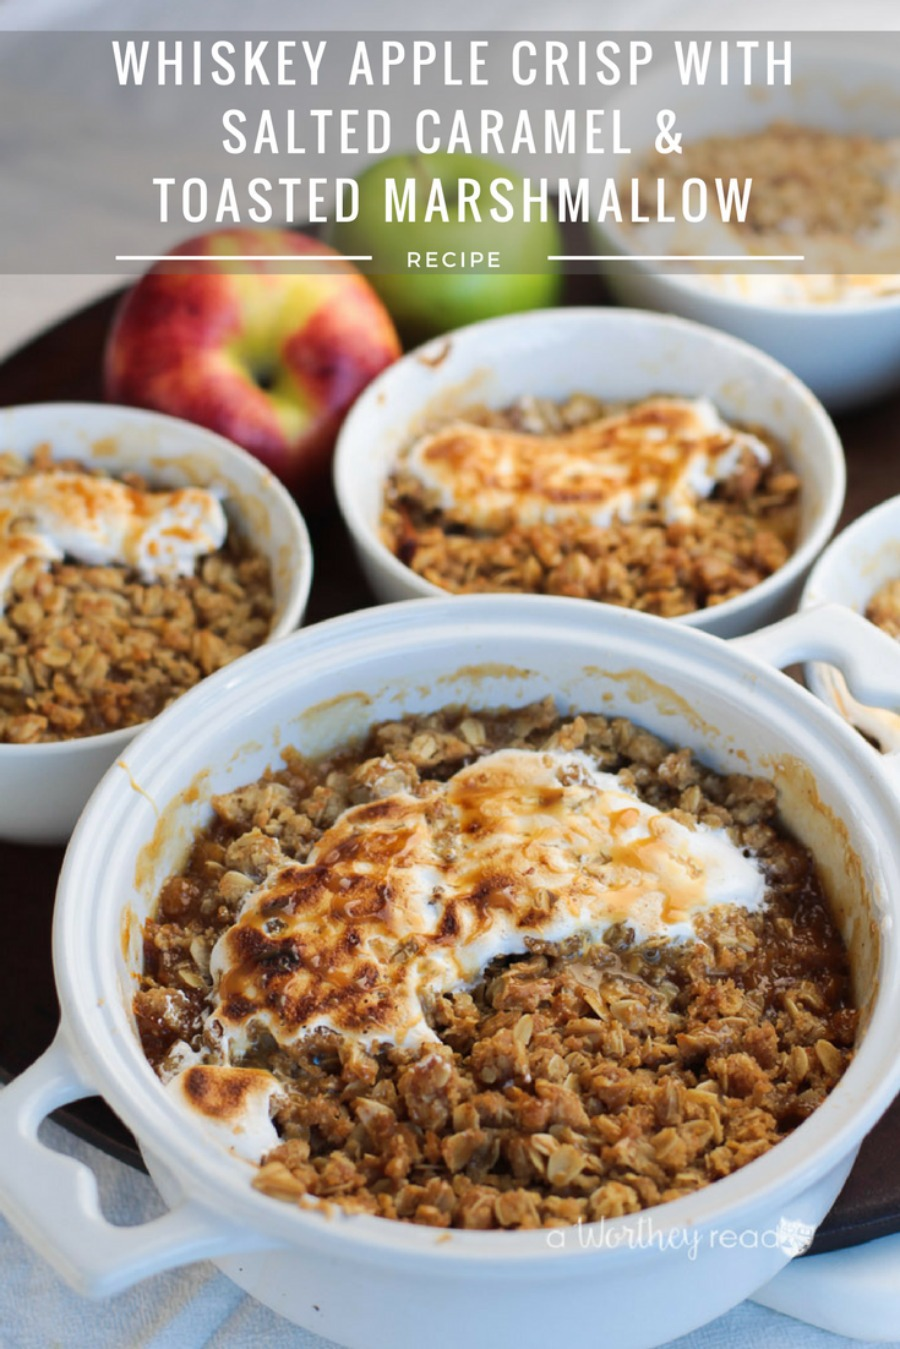 Whiskey Apple Crisp with Salted Caramel & Toasted Marshmallow